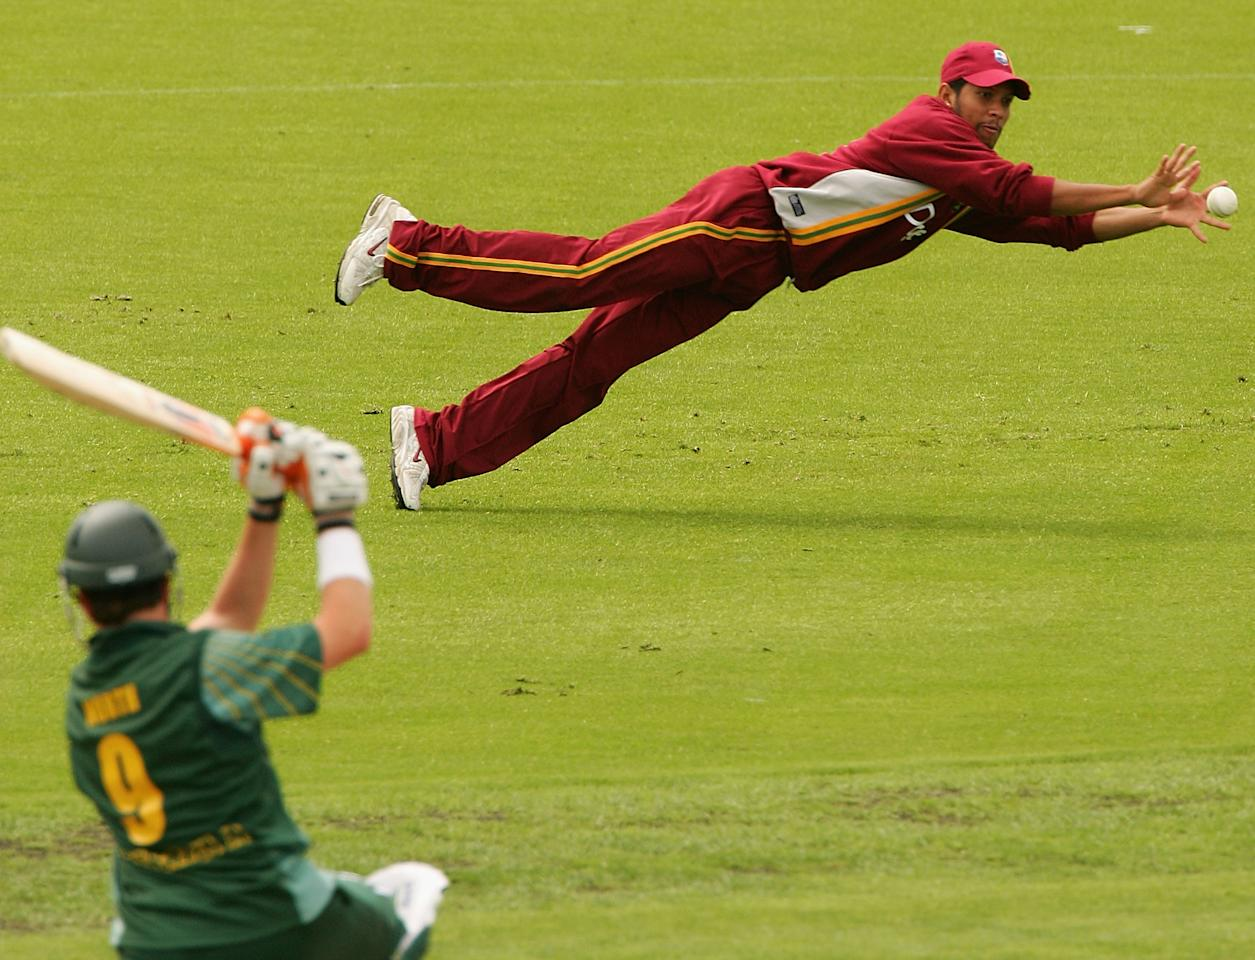 HOBART, AUSTRALIA - JANUARY 8:  Ramnaresh Sarwan of the West Indies dives to catch Marcus North of Australia A during the One Day Match between Australia A and the West Indies played at Bellerive Oval on January 8, 2005 in Hobart, Australia.  (Photo by Hamish Blair/Getty Images)